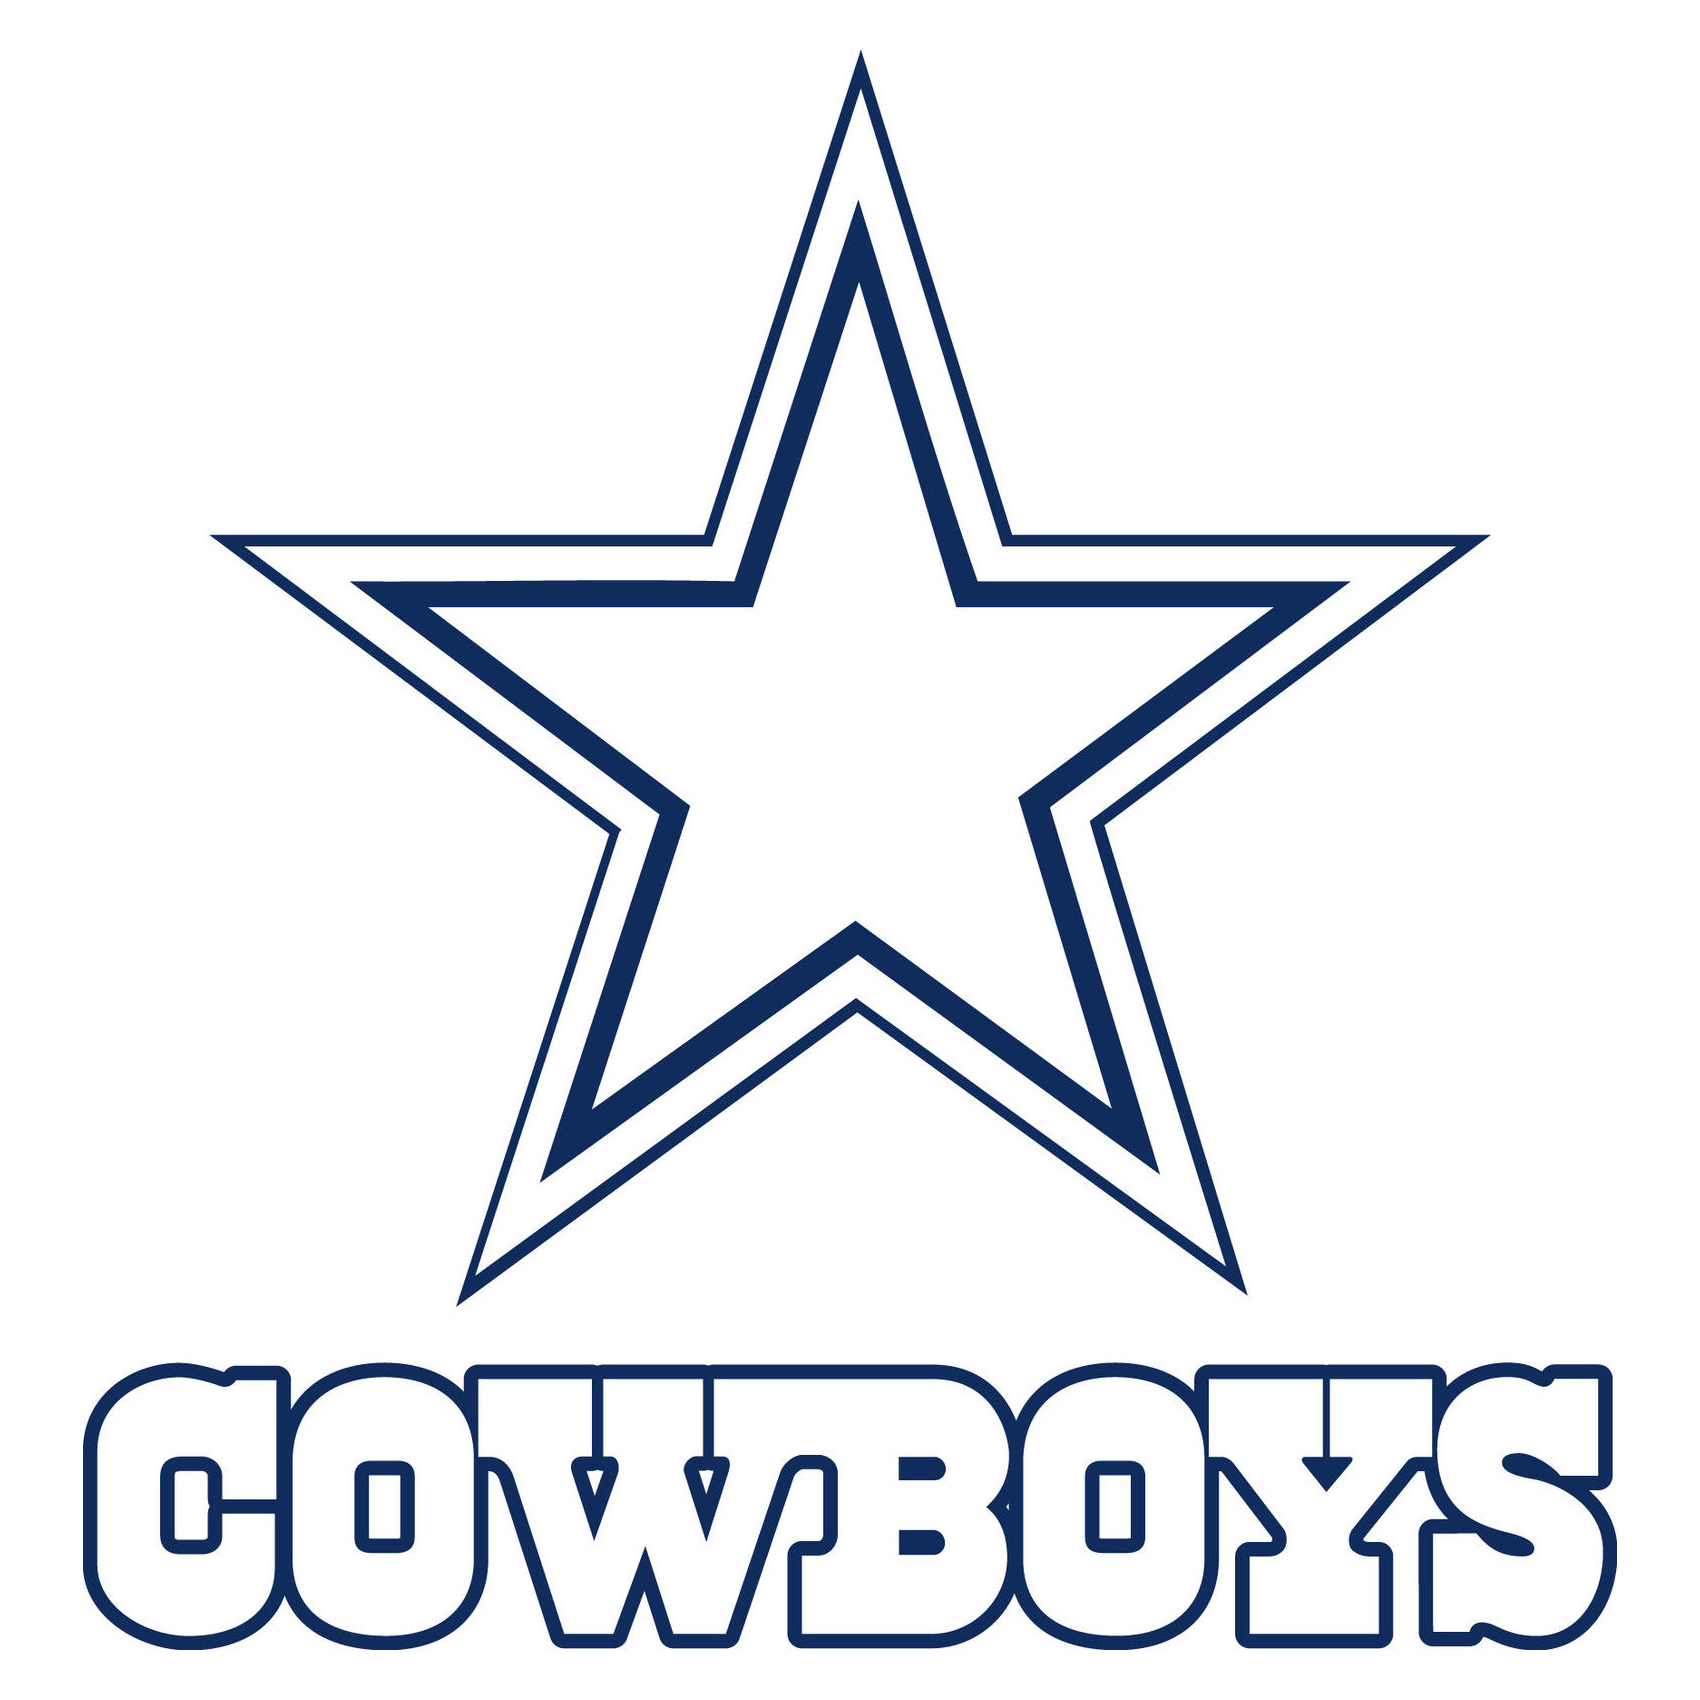 1700x1700 Dallas Cowboys Logo, Dallas Cowboys Symbol Meaning, History